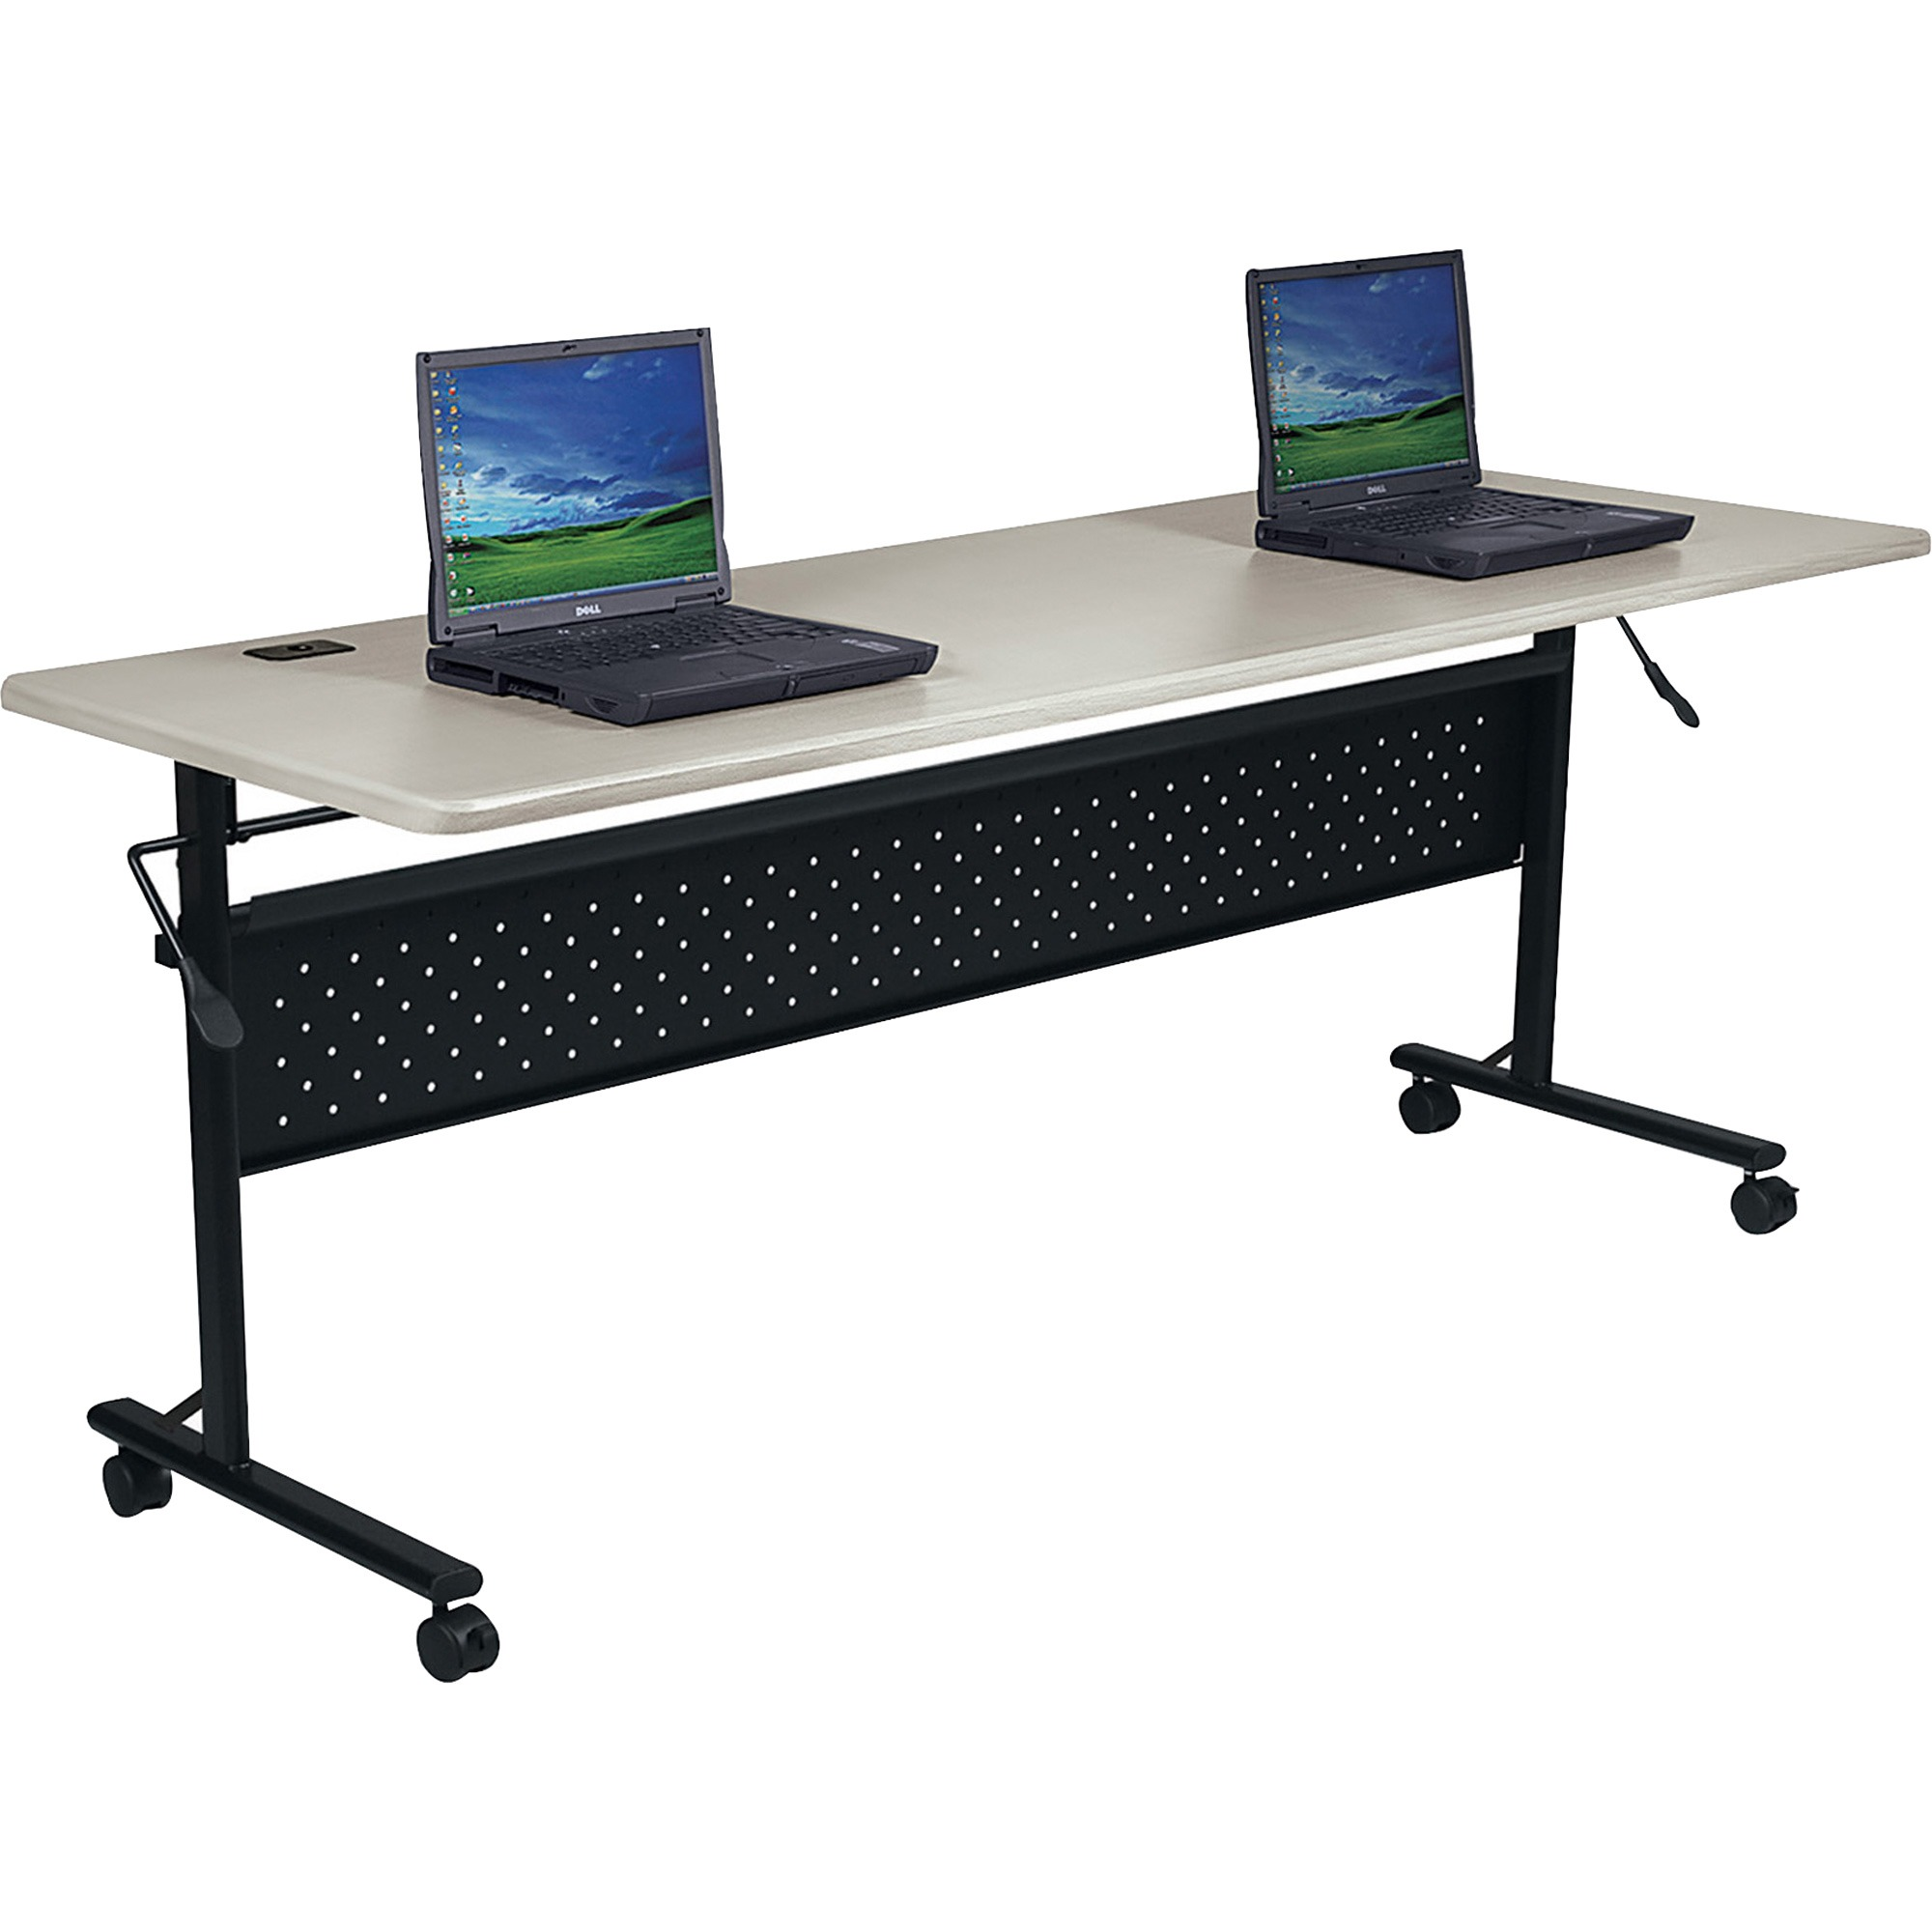 Lorell, LLR60673, Flipper Training Table, 1 Each